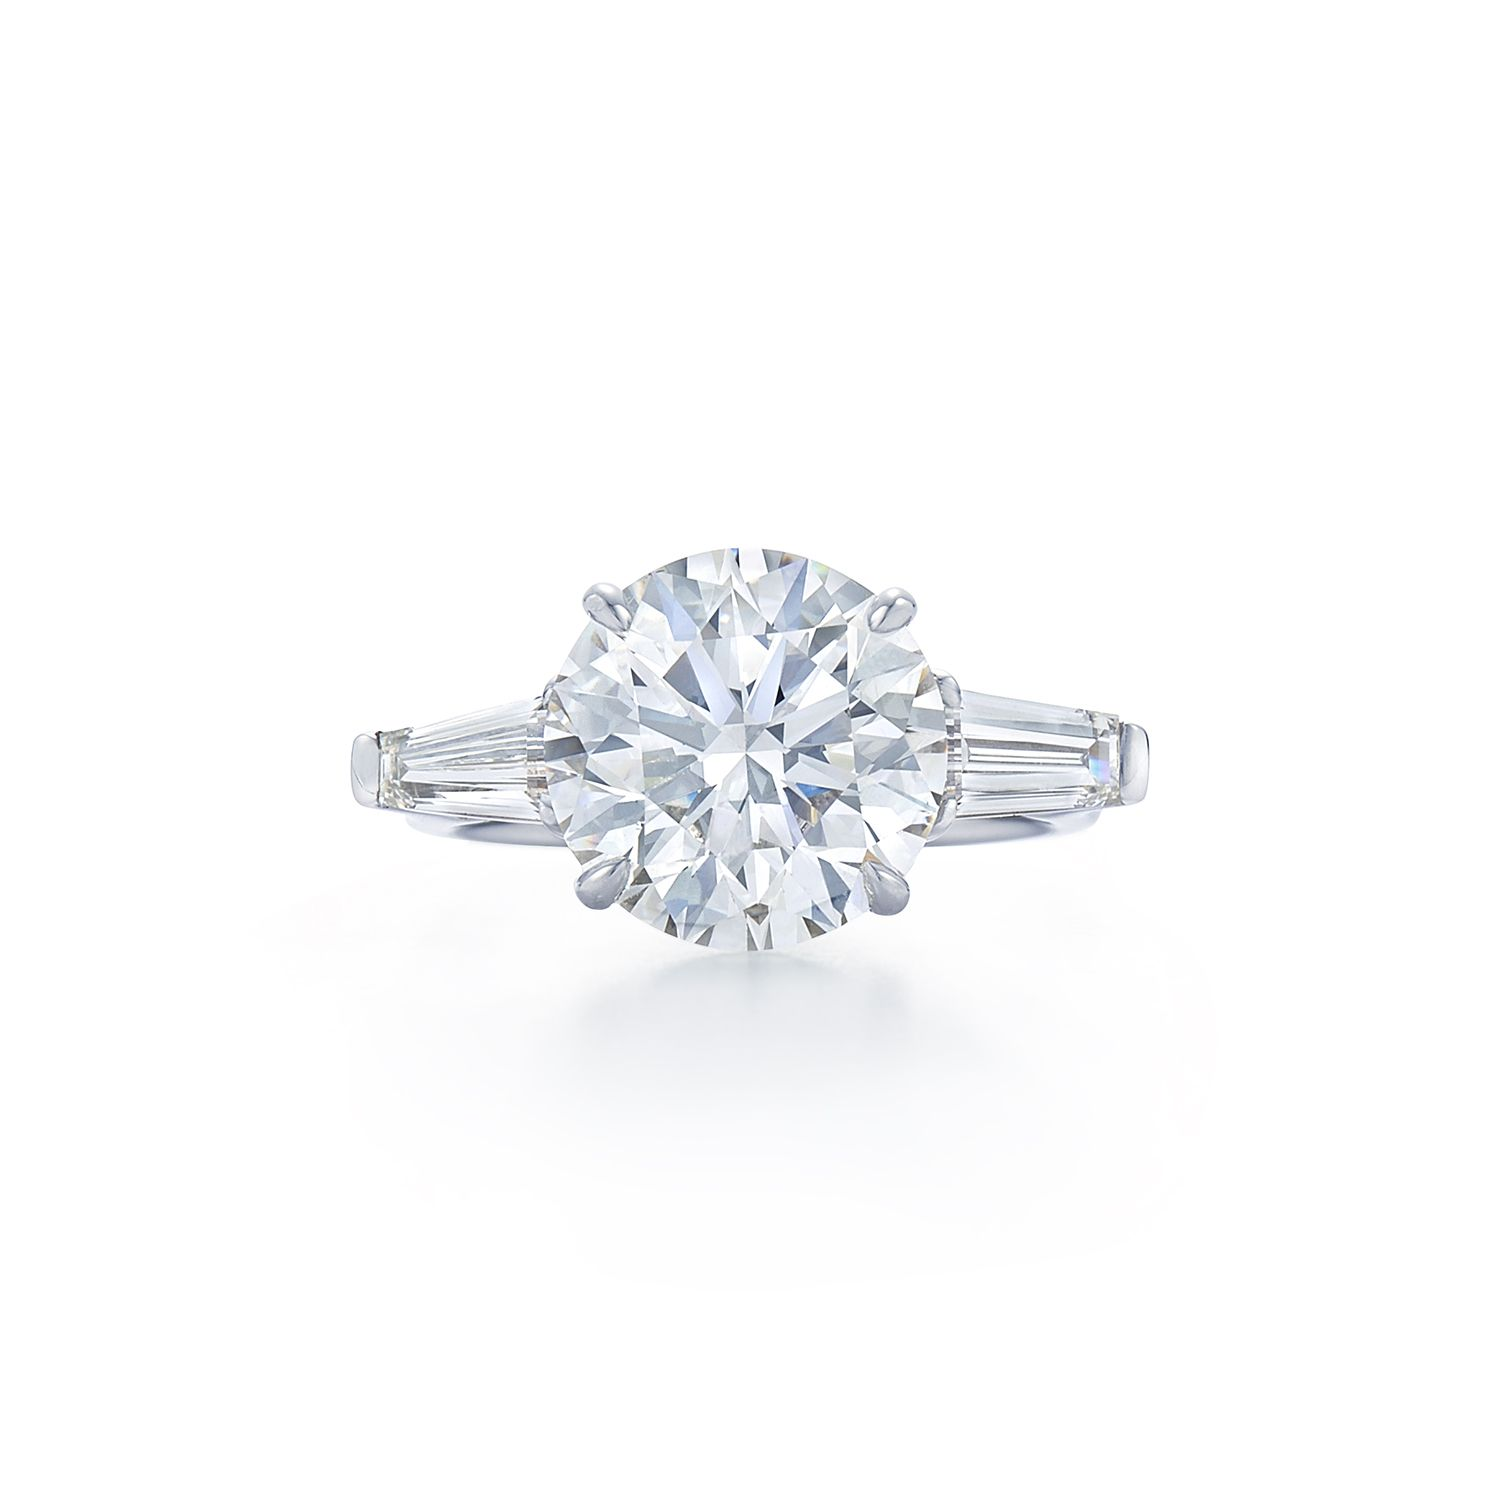 round brilliant diamond ring with tapered baguette side stones